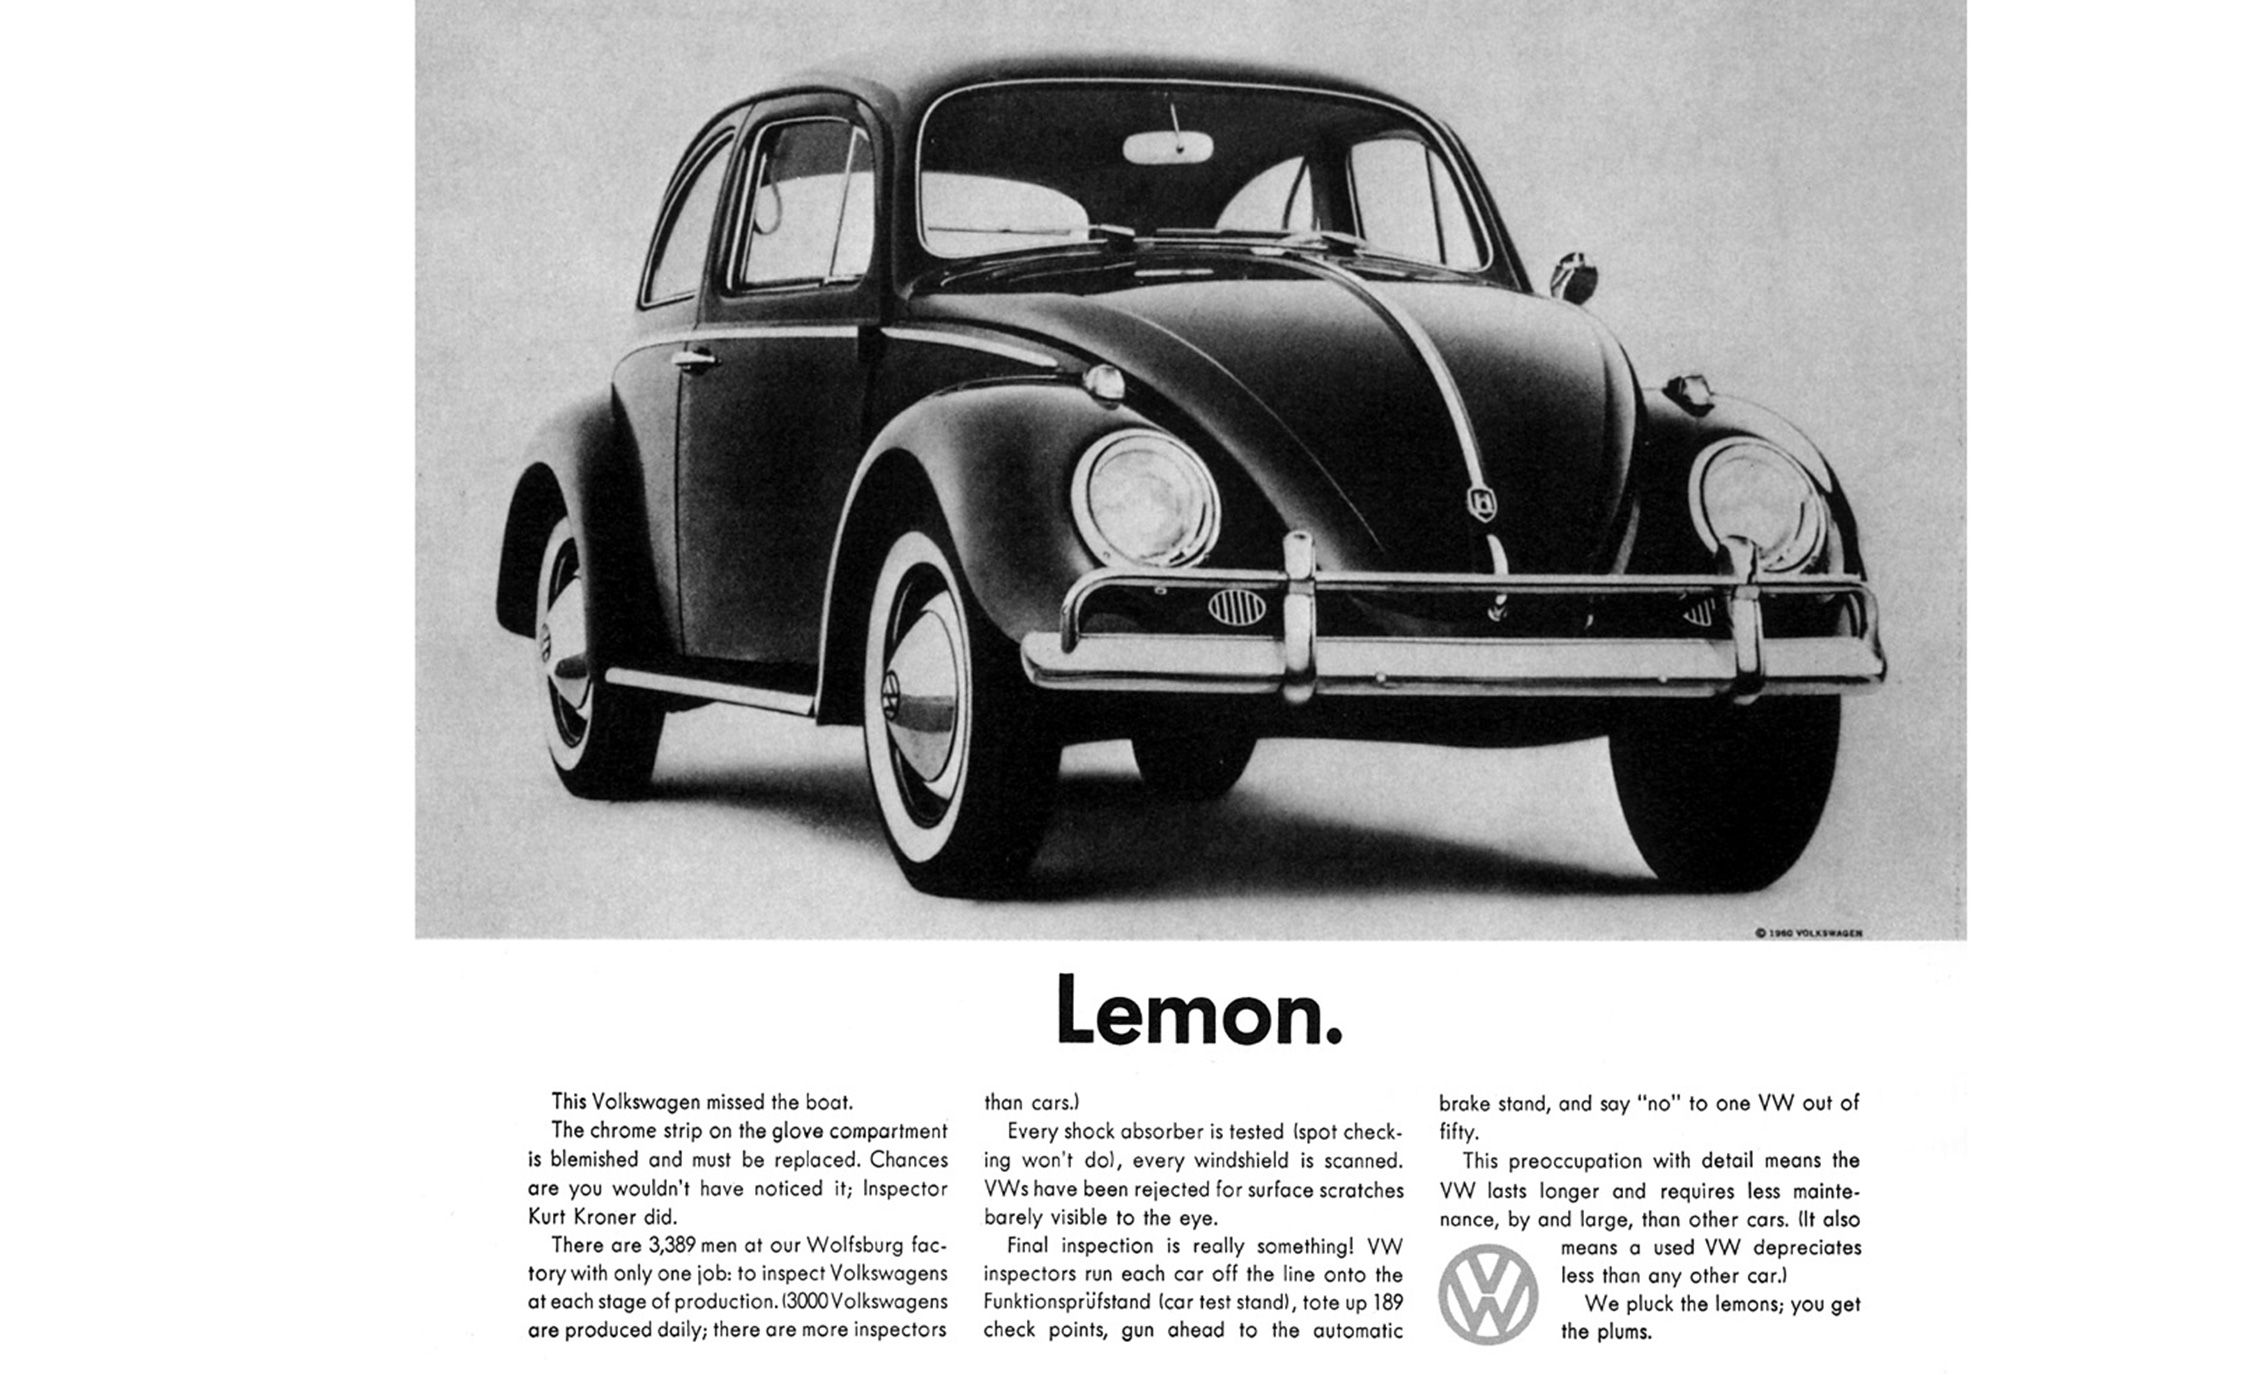 1959 Vw Semap Beetle Wiring Diagram. . Wiring Diagram Sketch G L Keyence Light Curtain Wiring Diagram on